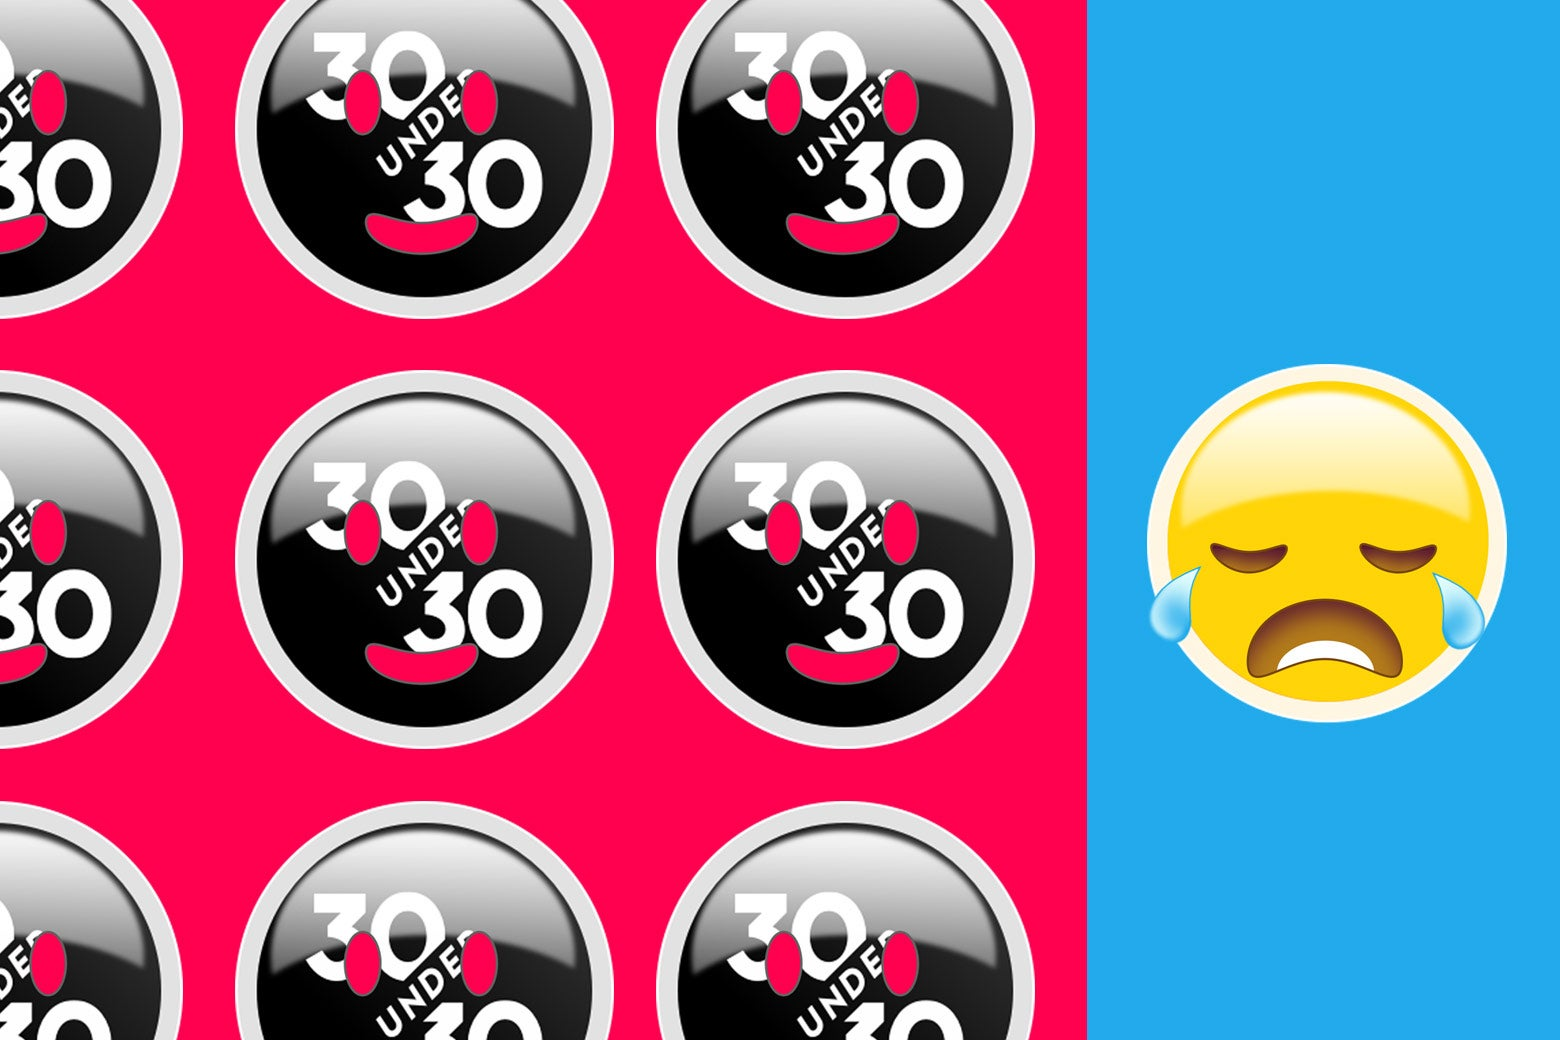 30 Over 30 logo with happy face emojis placed over it and one sad emoji without the 30 Over 30.